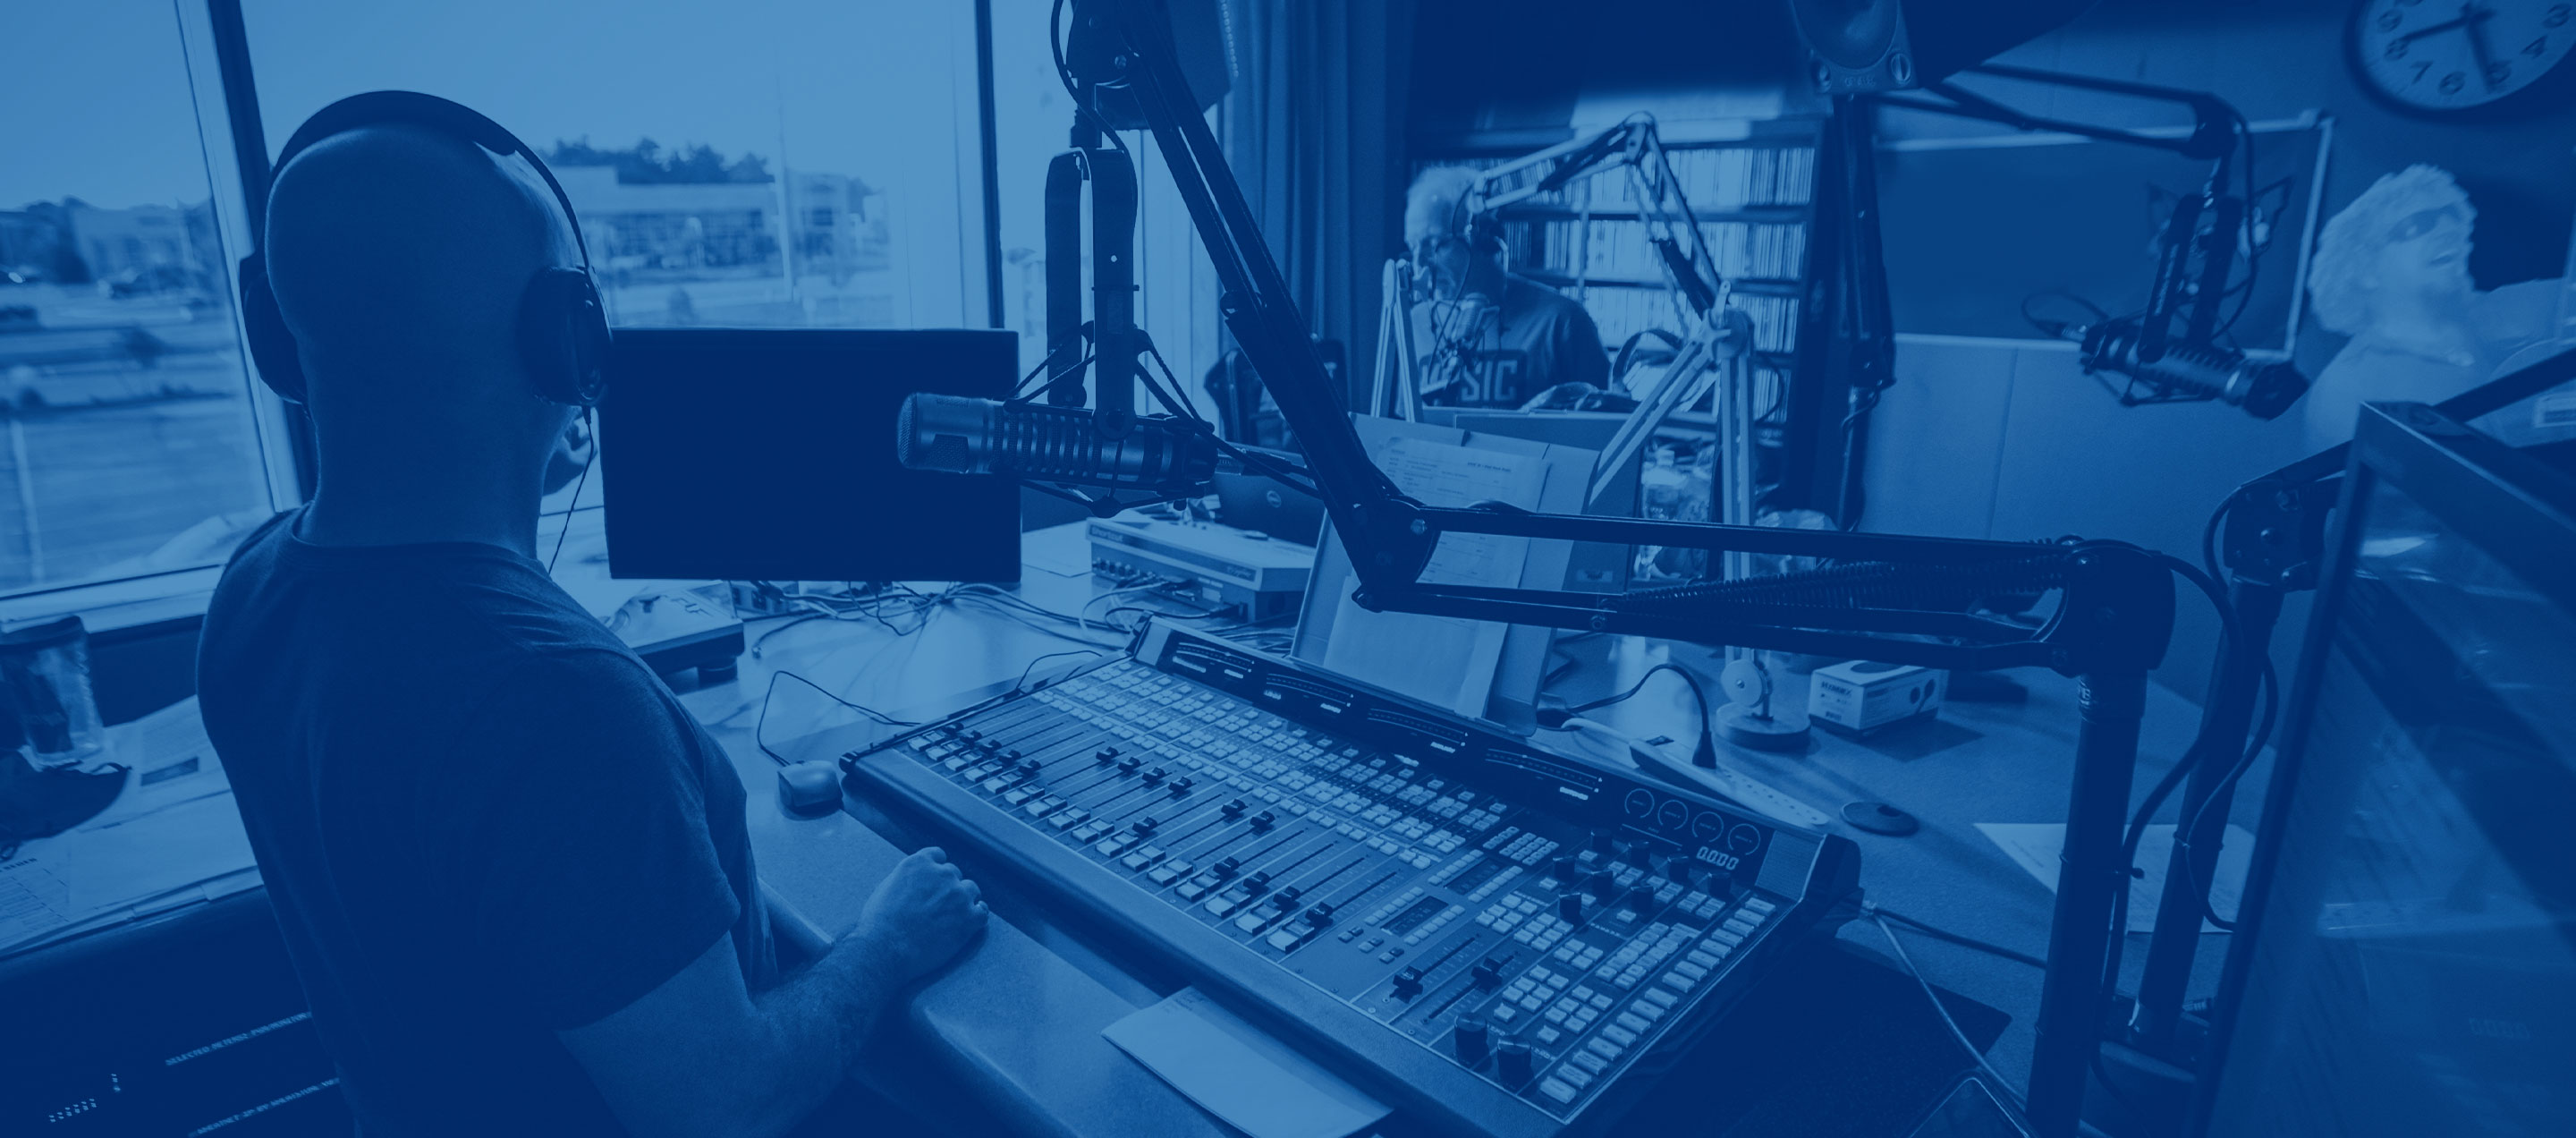 Best-of-Breed Software Stack or All-in-One Platform: 5 Considerations for Broadcasters